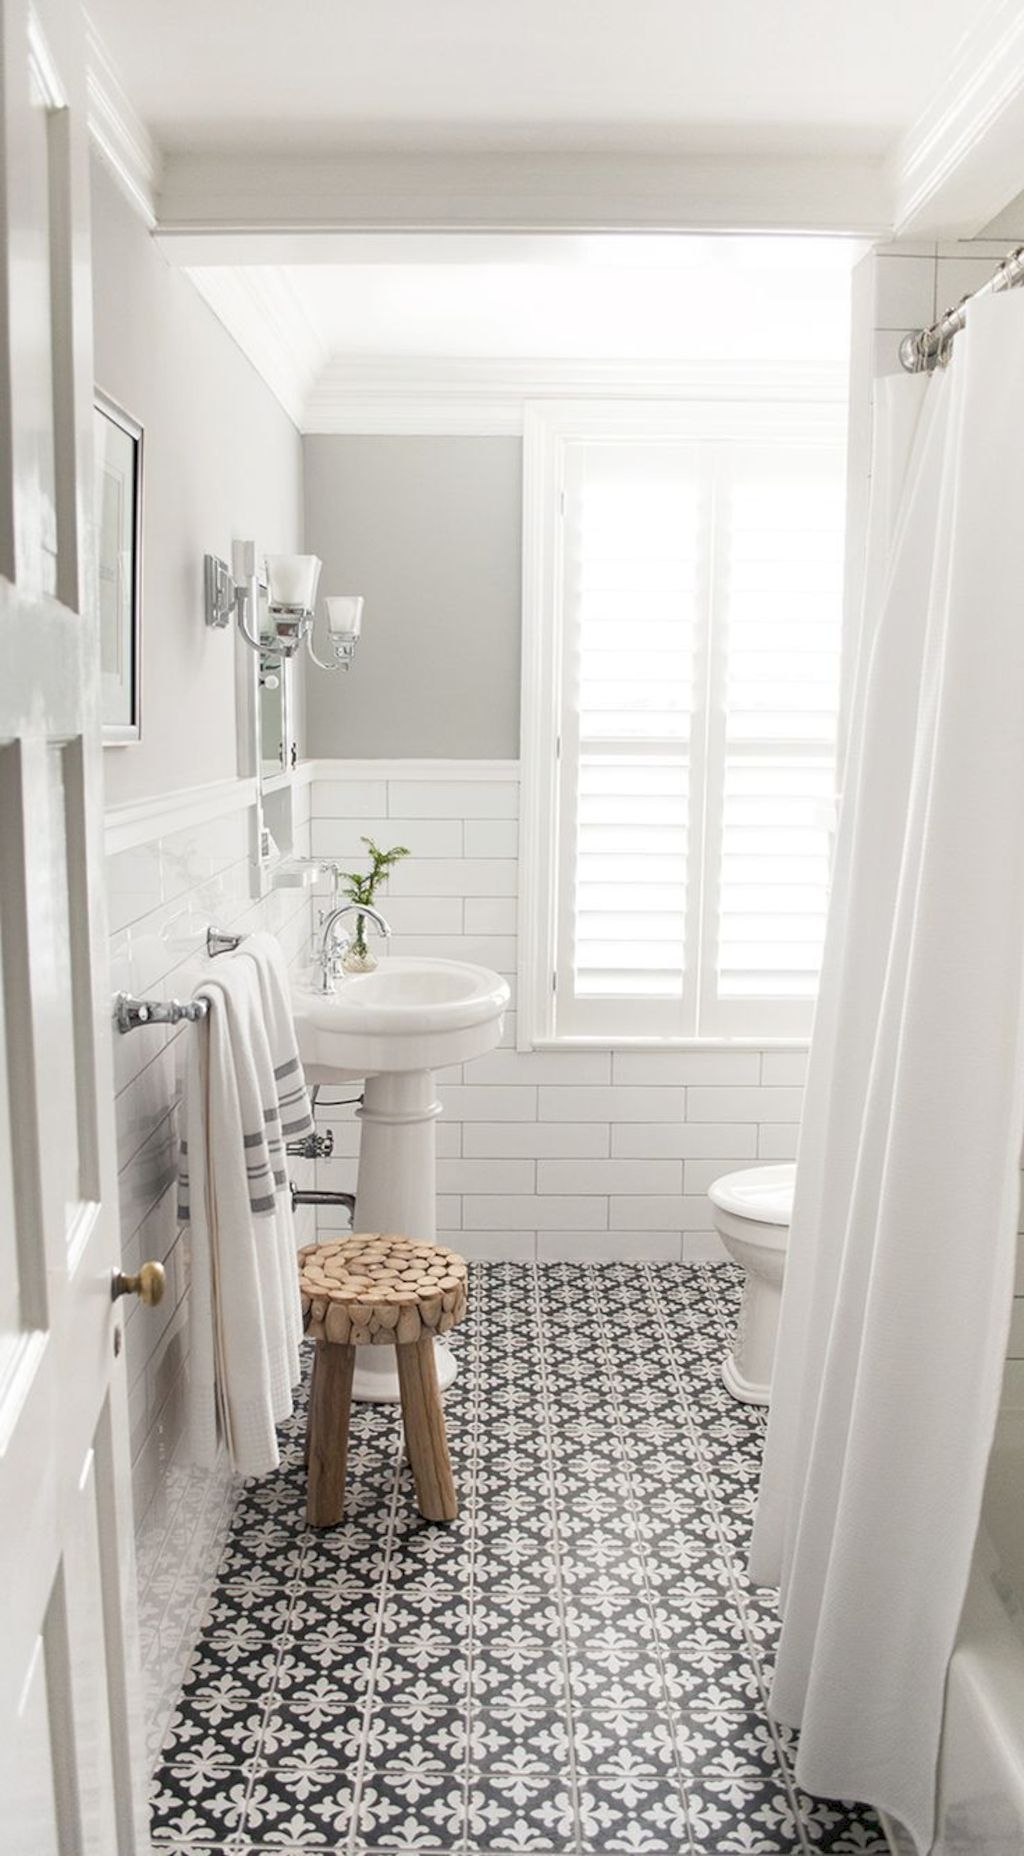 Beautiful bathroom update with eclectic patterned tiles and ethnic rugs very efficient to improve bathroom floor design Image 25